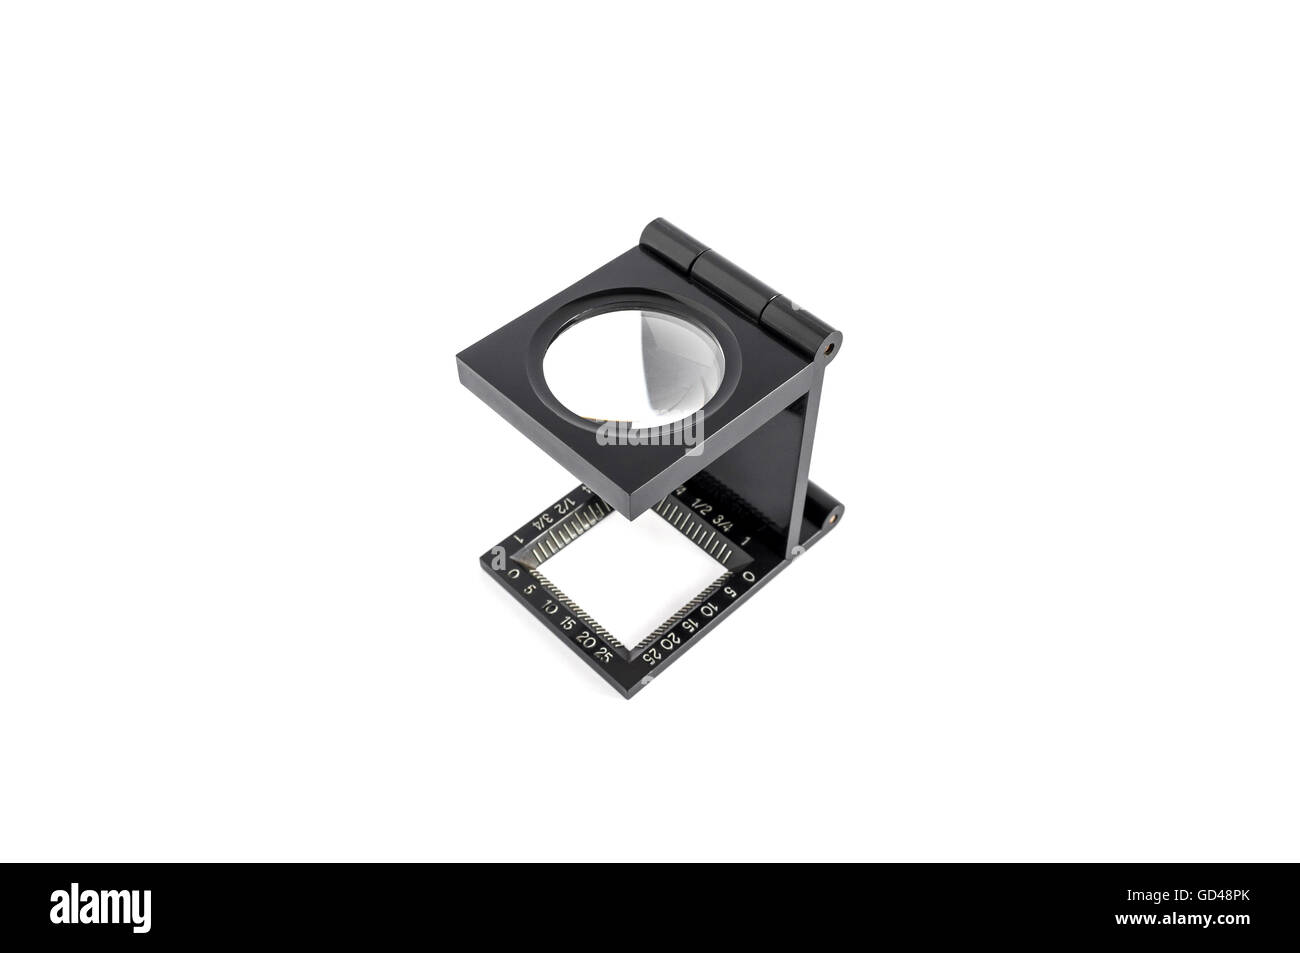 The magnifying glass standing usage for test printing. isolated on white background. - Stock Image